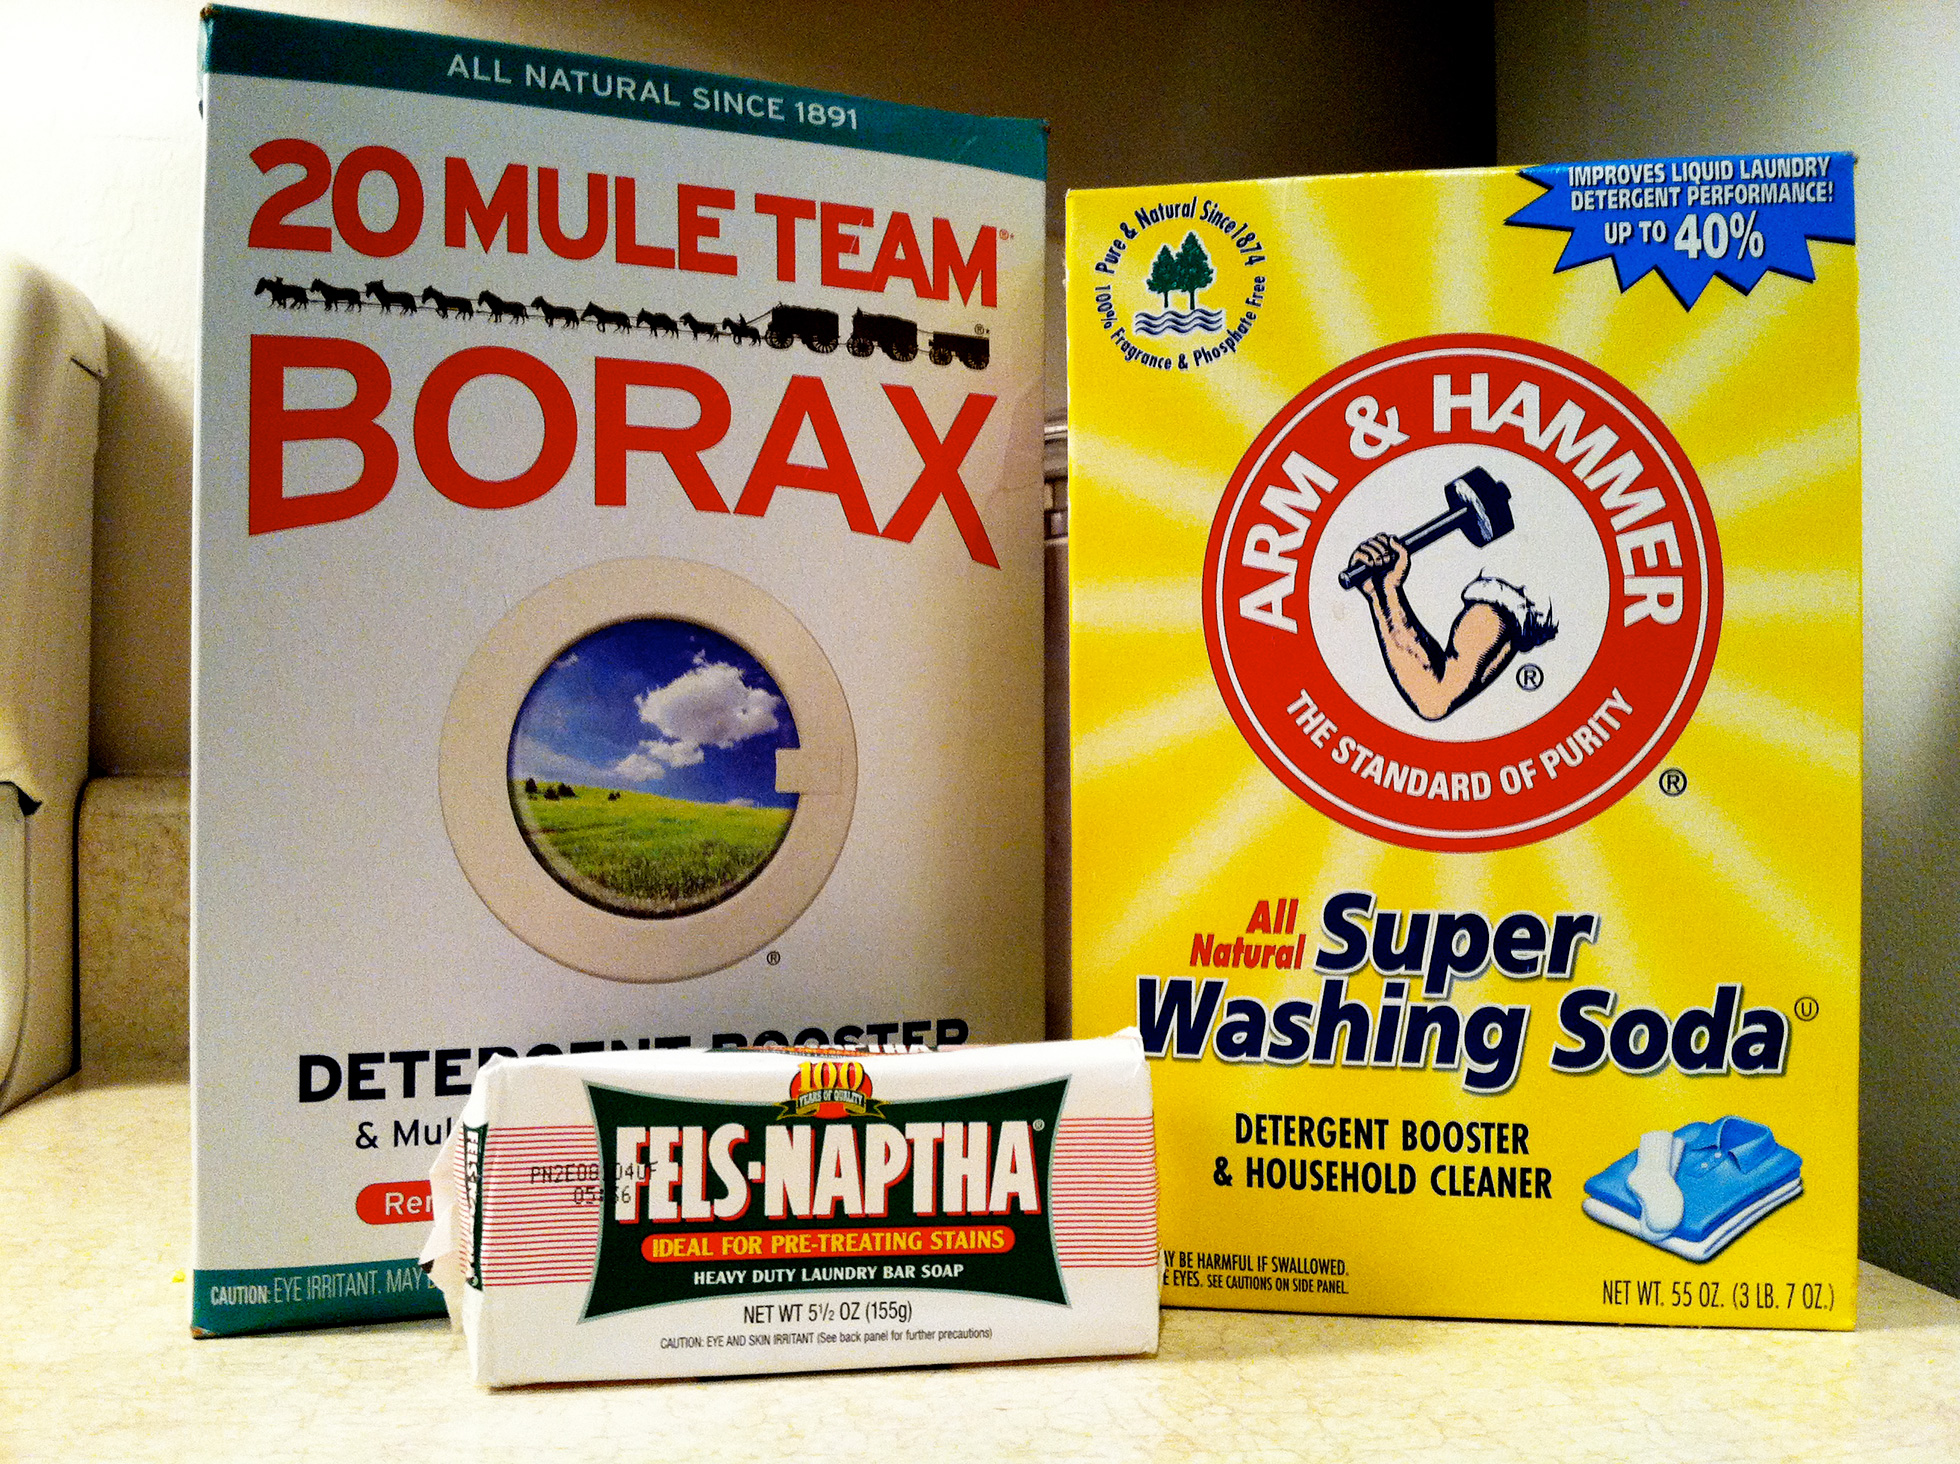 Ingredients for homemade laundry detergent #1